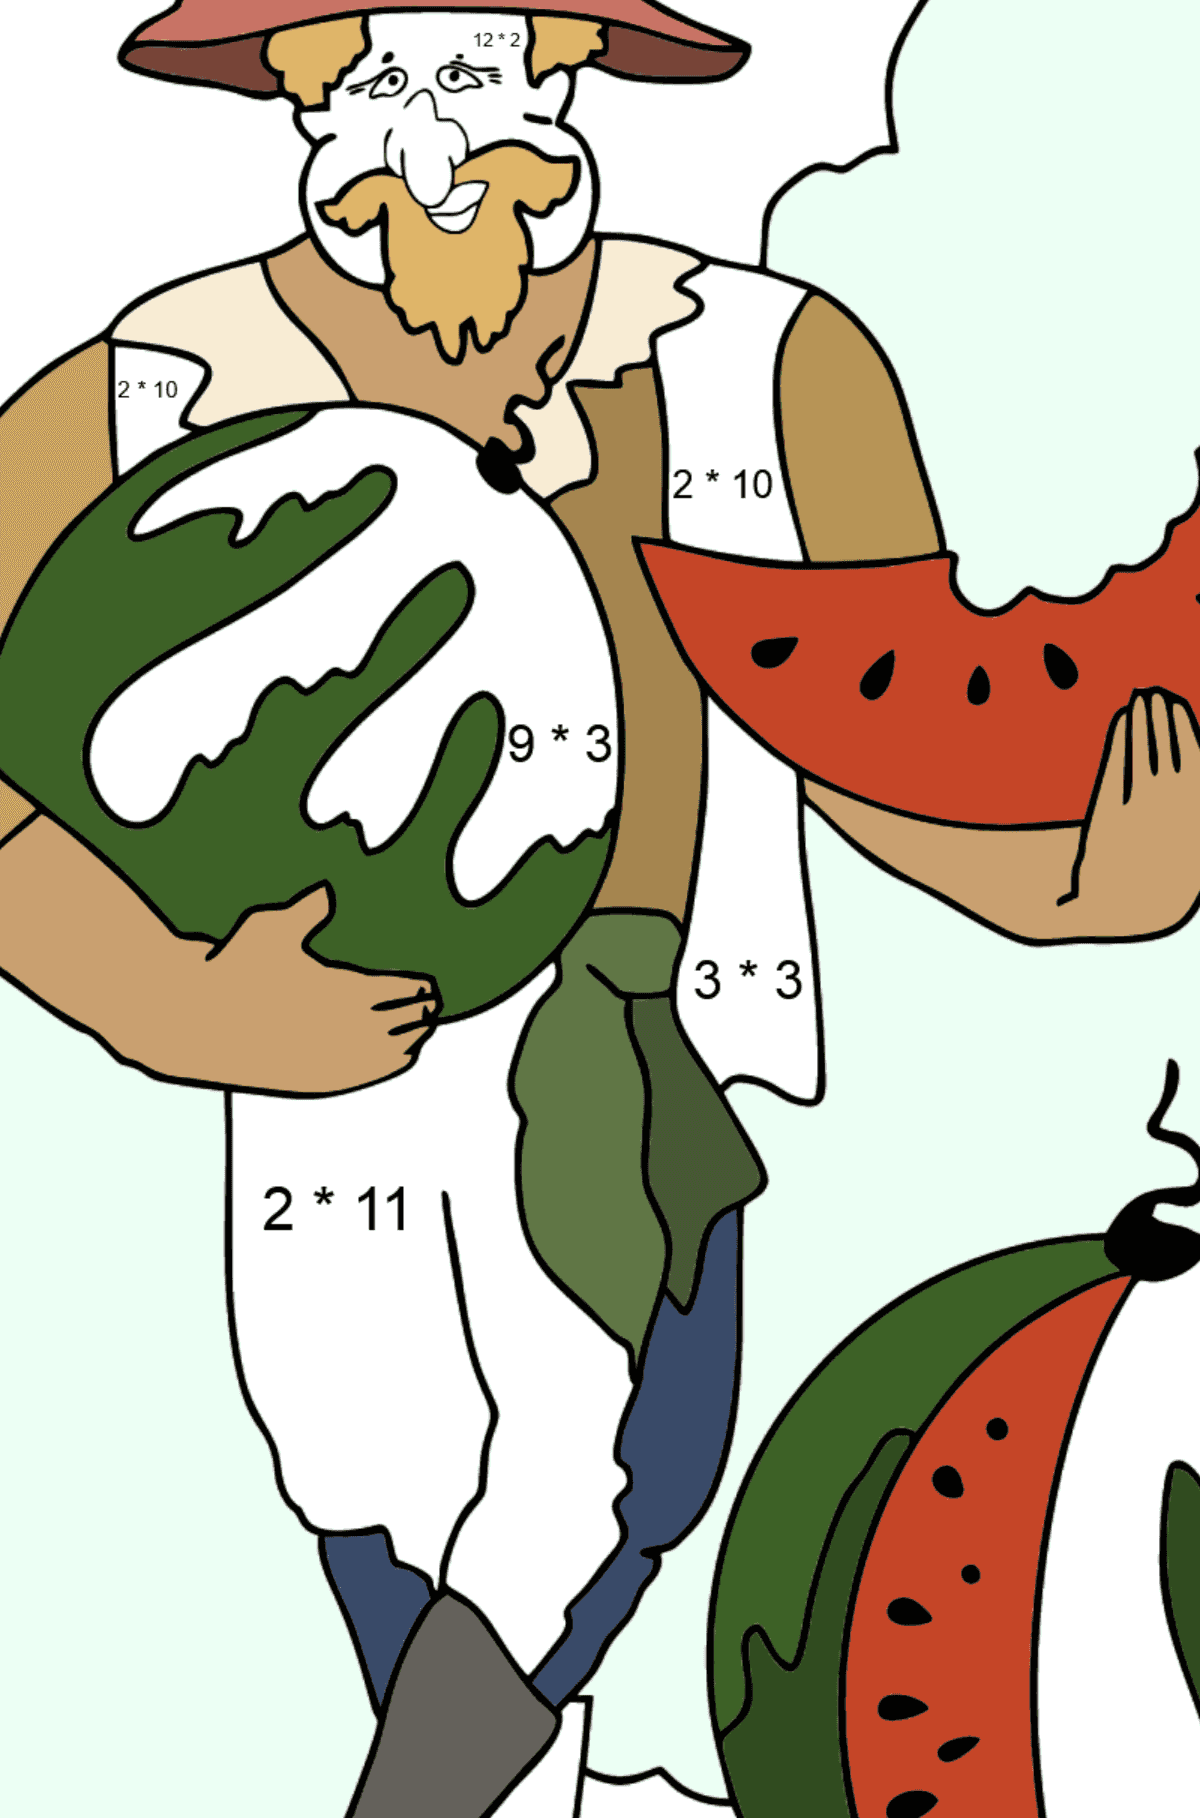 Coloring Page - A Pirate is Sharing a Ripe Watermelon - Math Coloring - Multiplication for Kids